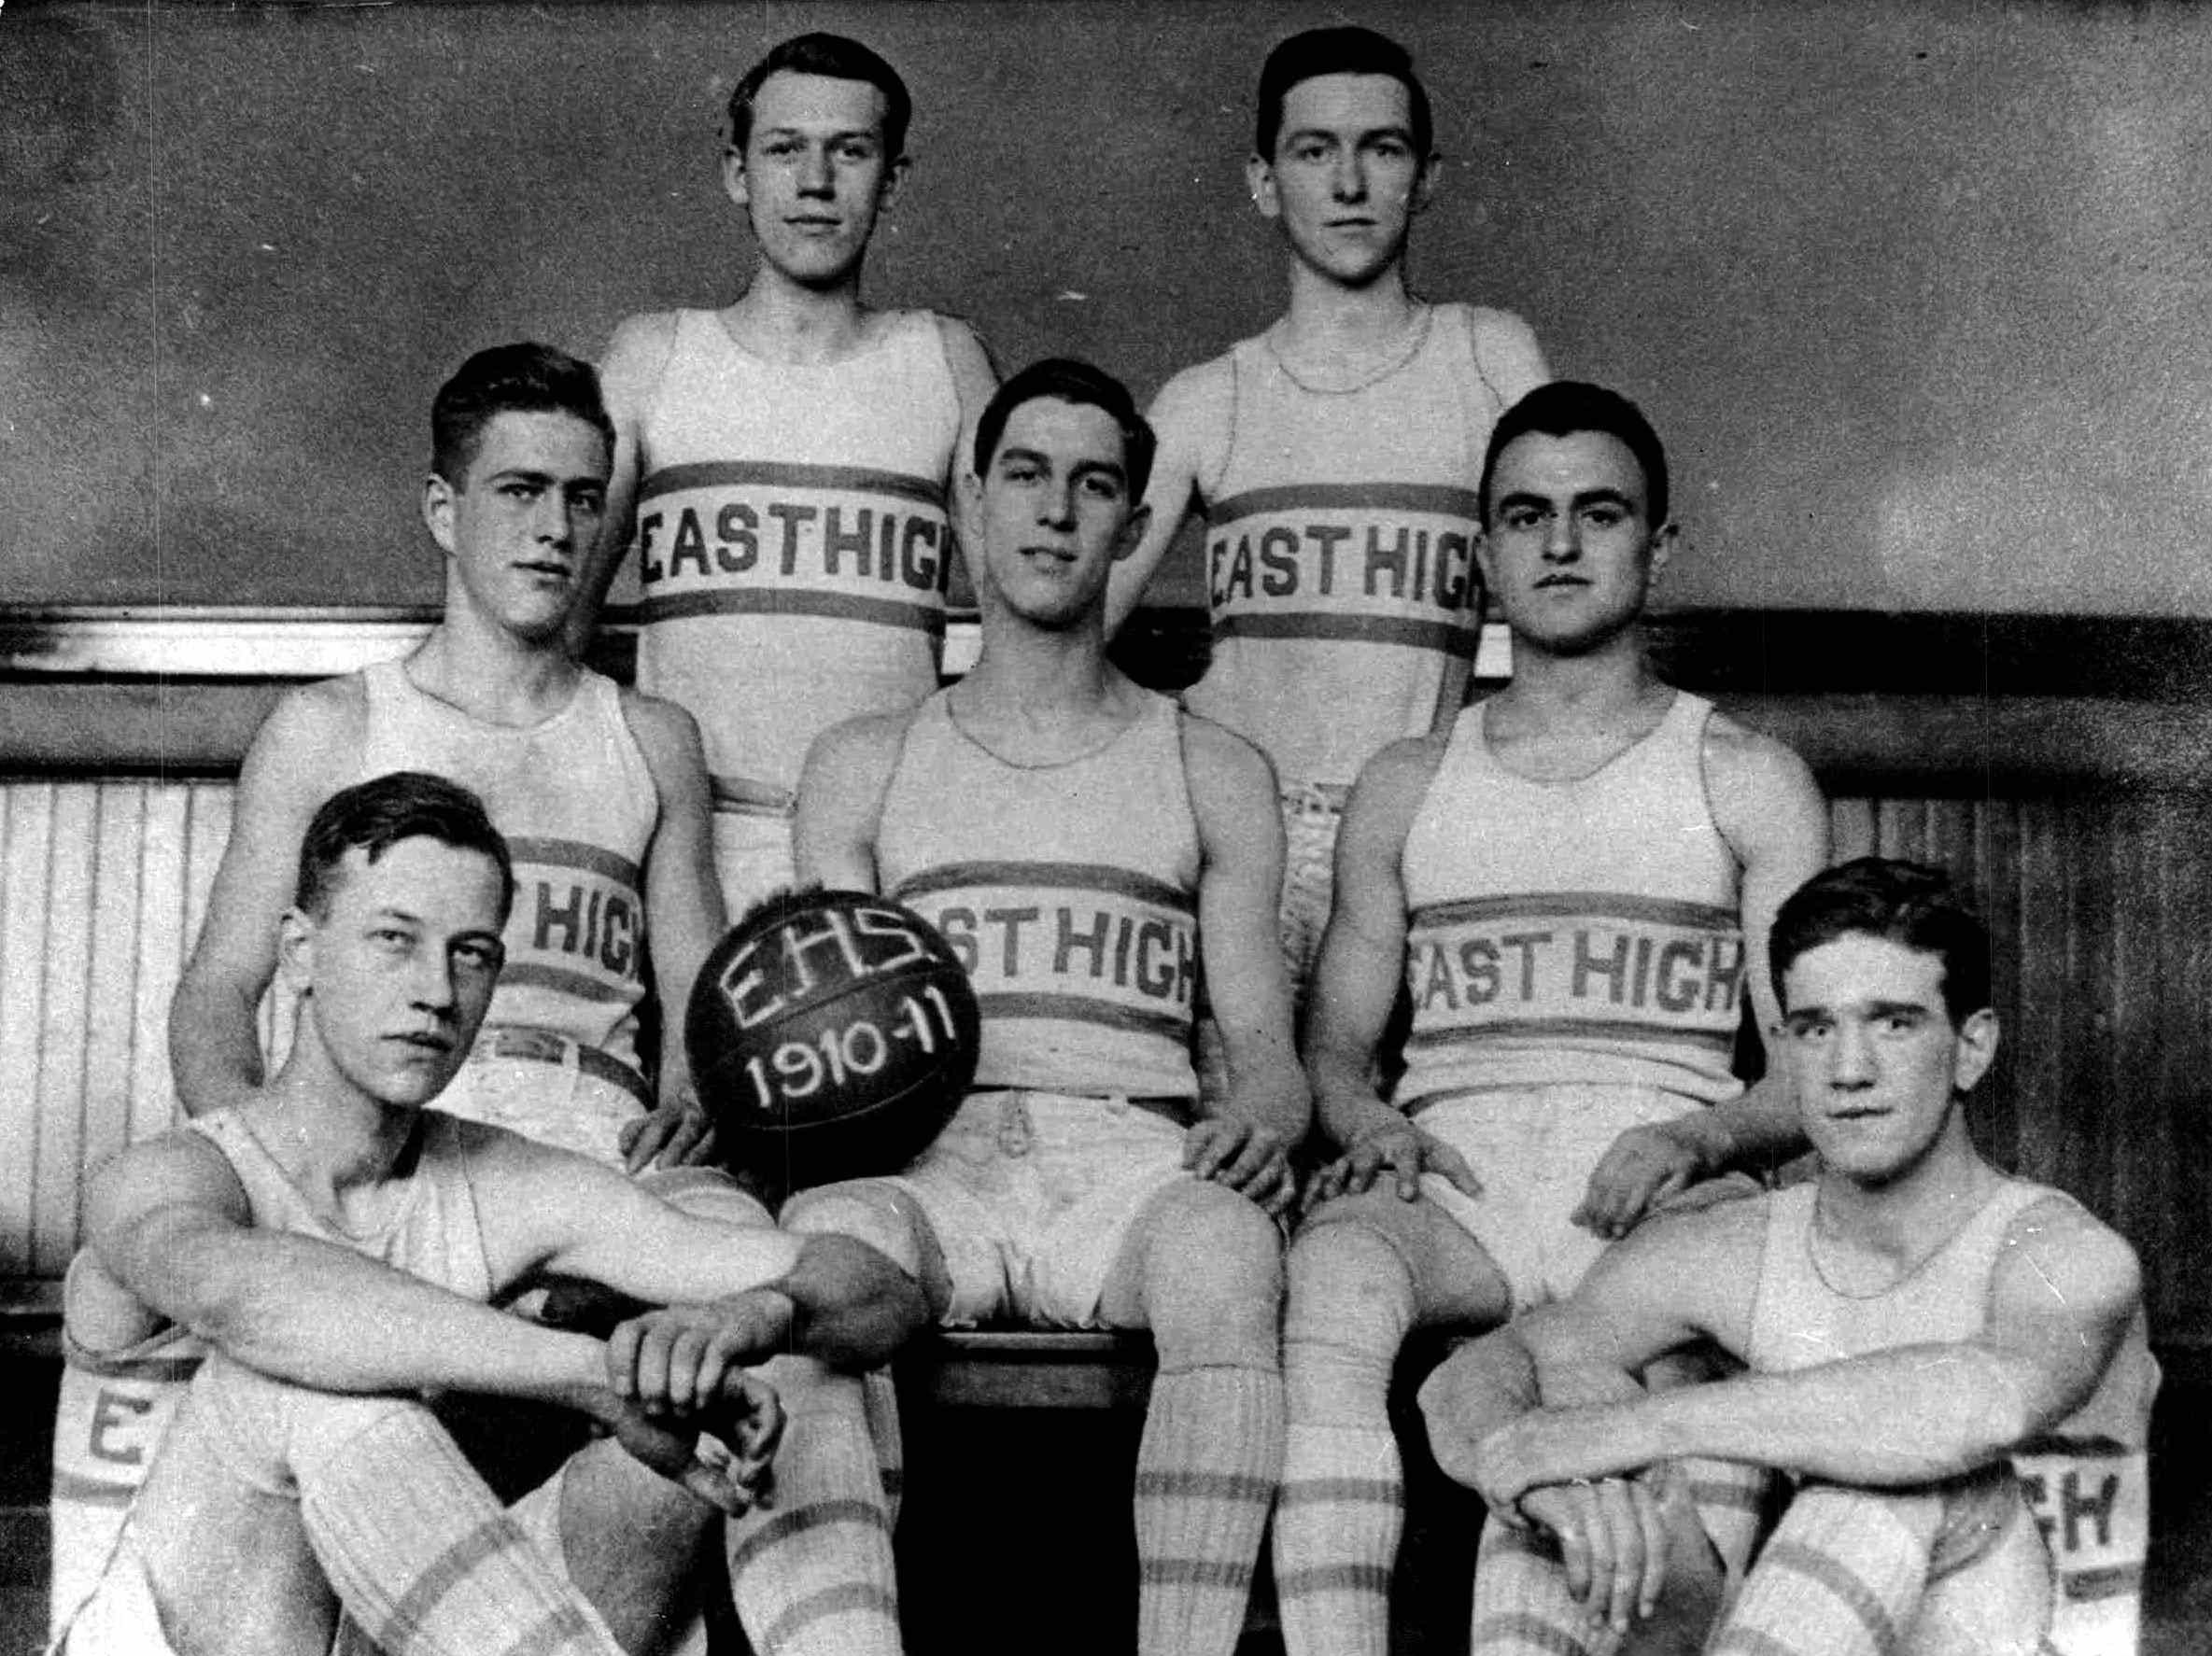 Undefeated 1910-11 Team - Winners of 17 straight games, East High's famed team claimed the scholastic championship of New York State...and America. Team members were (tp) Davis Doron, Ed Doyle; (middle) Harold Doane, Capt. George Malone, Clem Lanni; (bottom) Fred Bloom, Johnny Murphy.